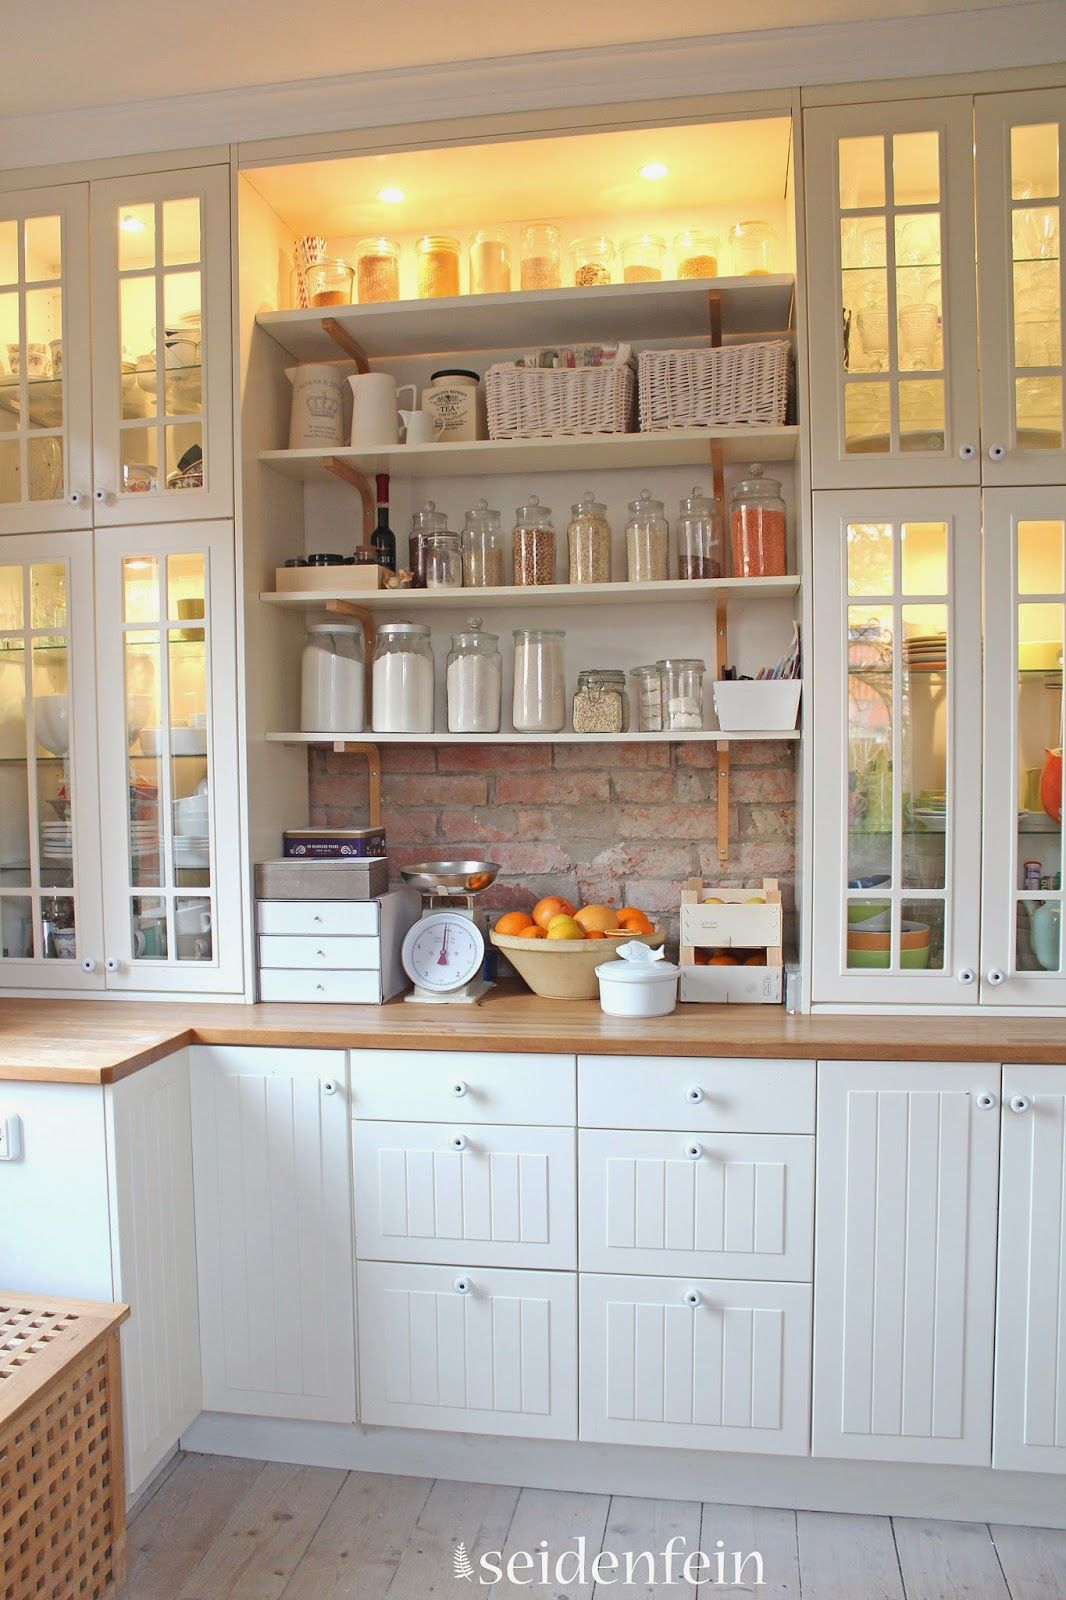 such a charming kitchen :: seidenfeins dekoblog: küchen make-over ... - Apothekerschrank Küche Ikea